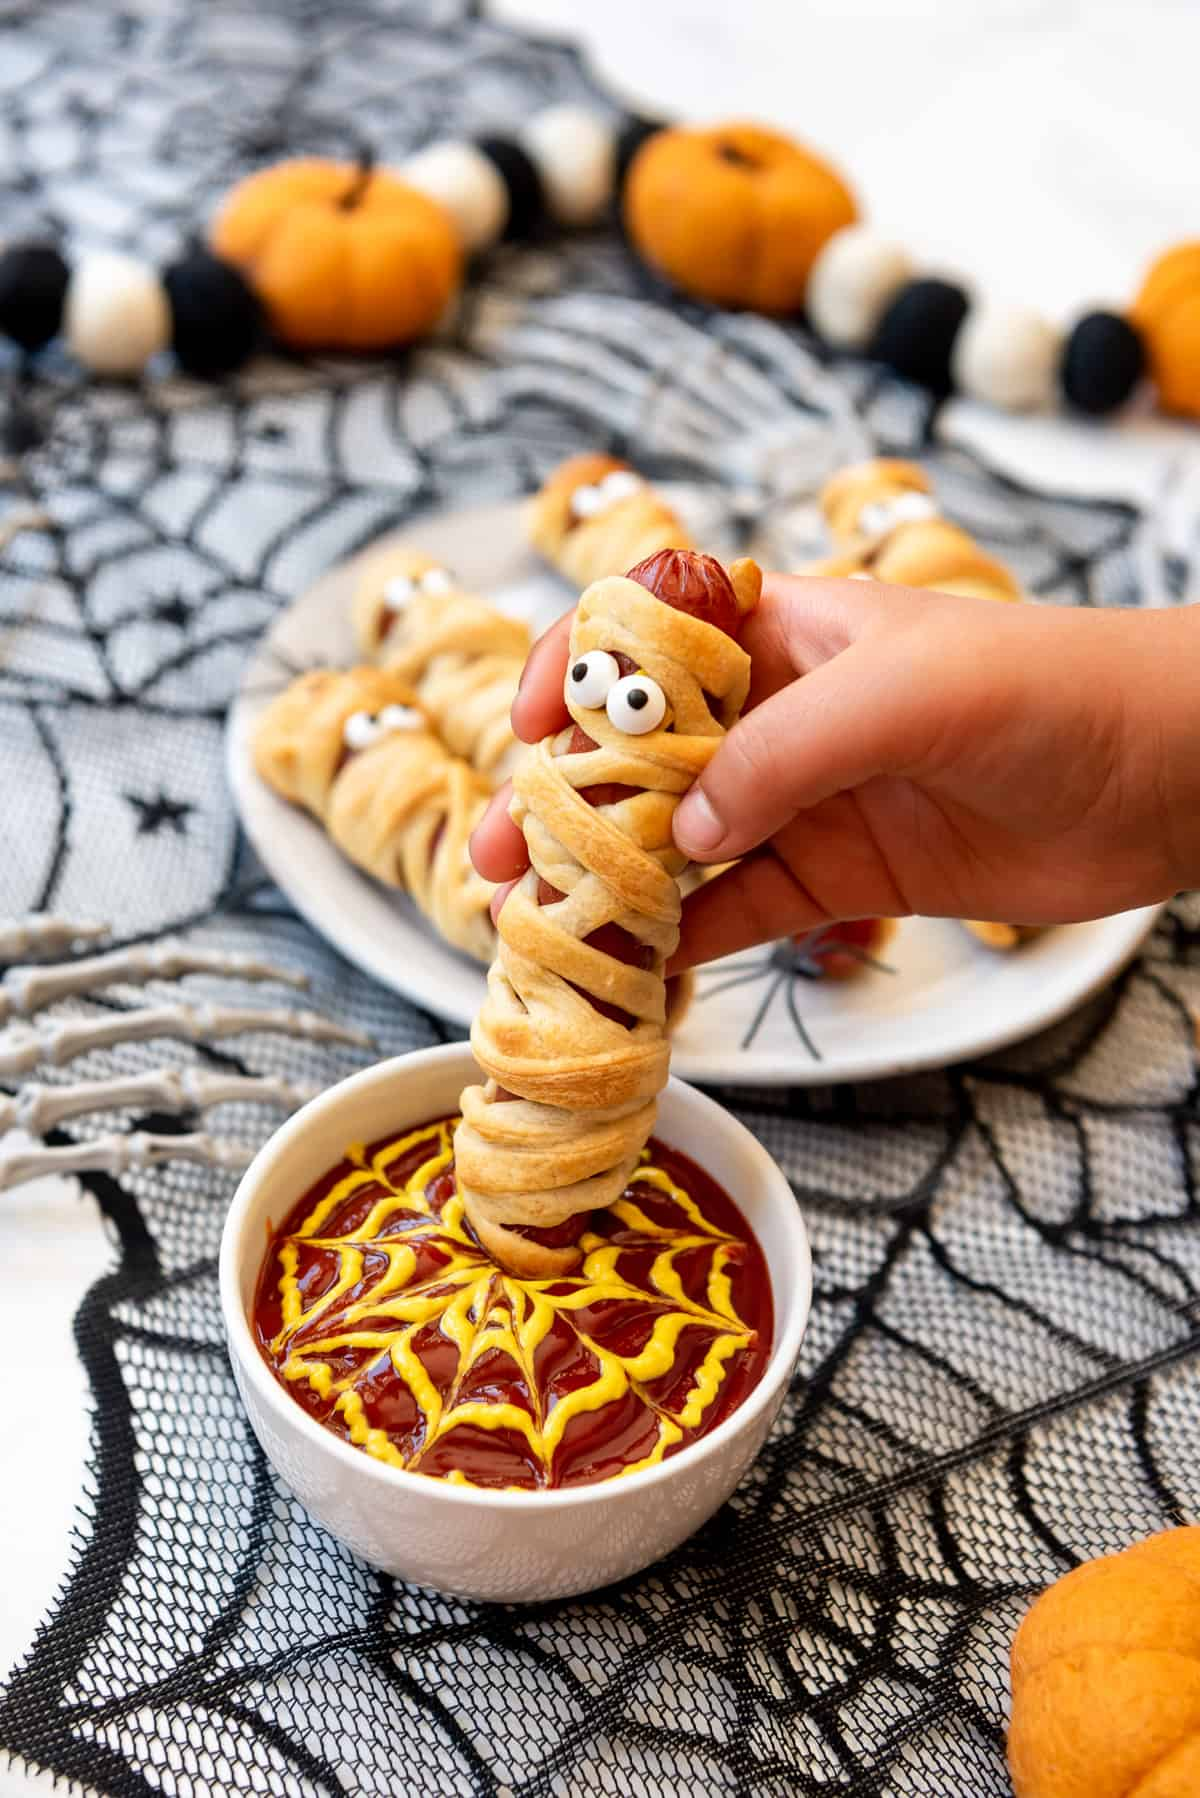 a child's hand dipping a Halloween mummy dog into a bowl of ketchup and mustard.